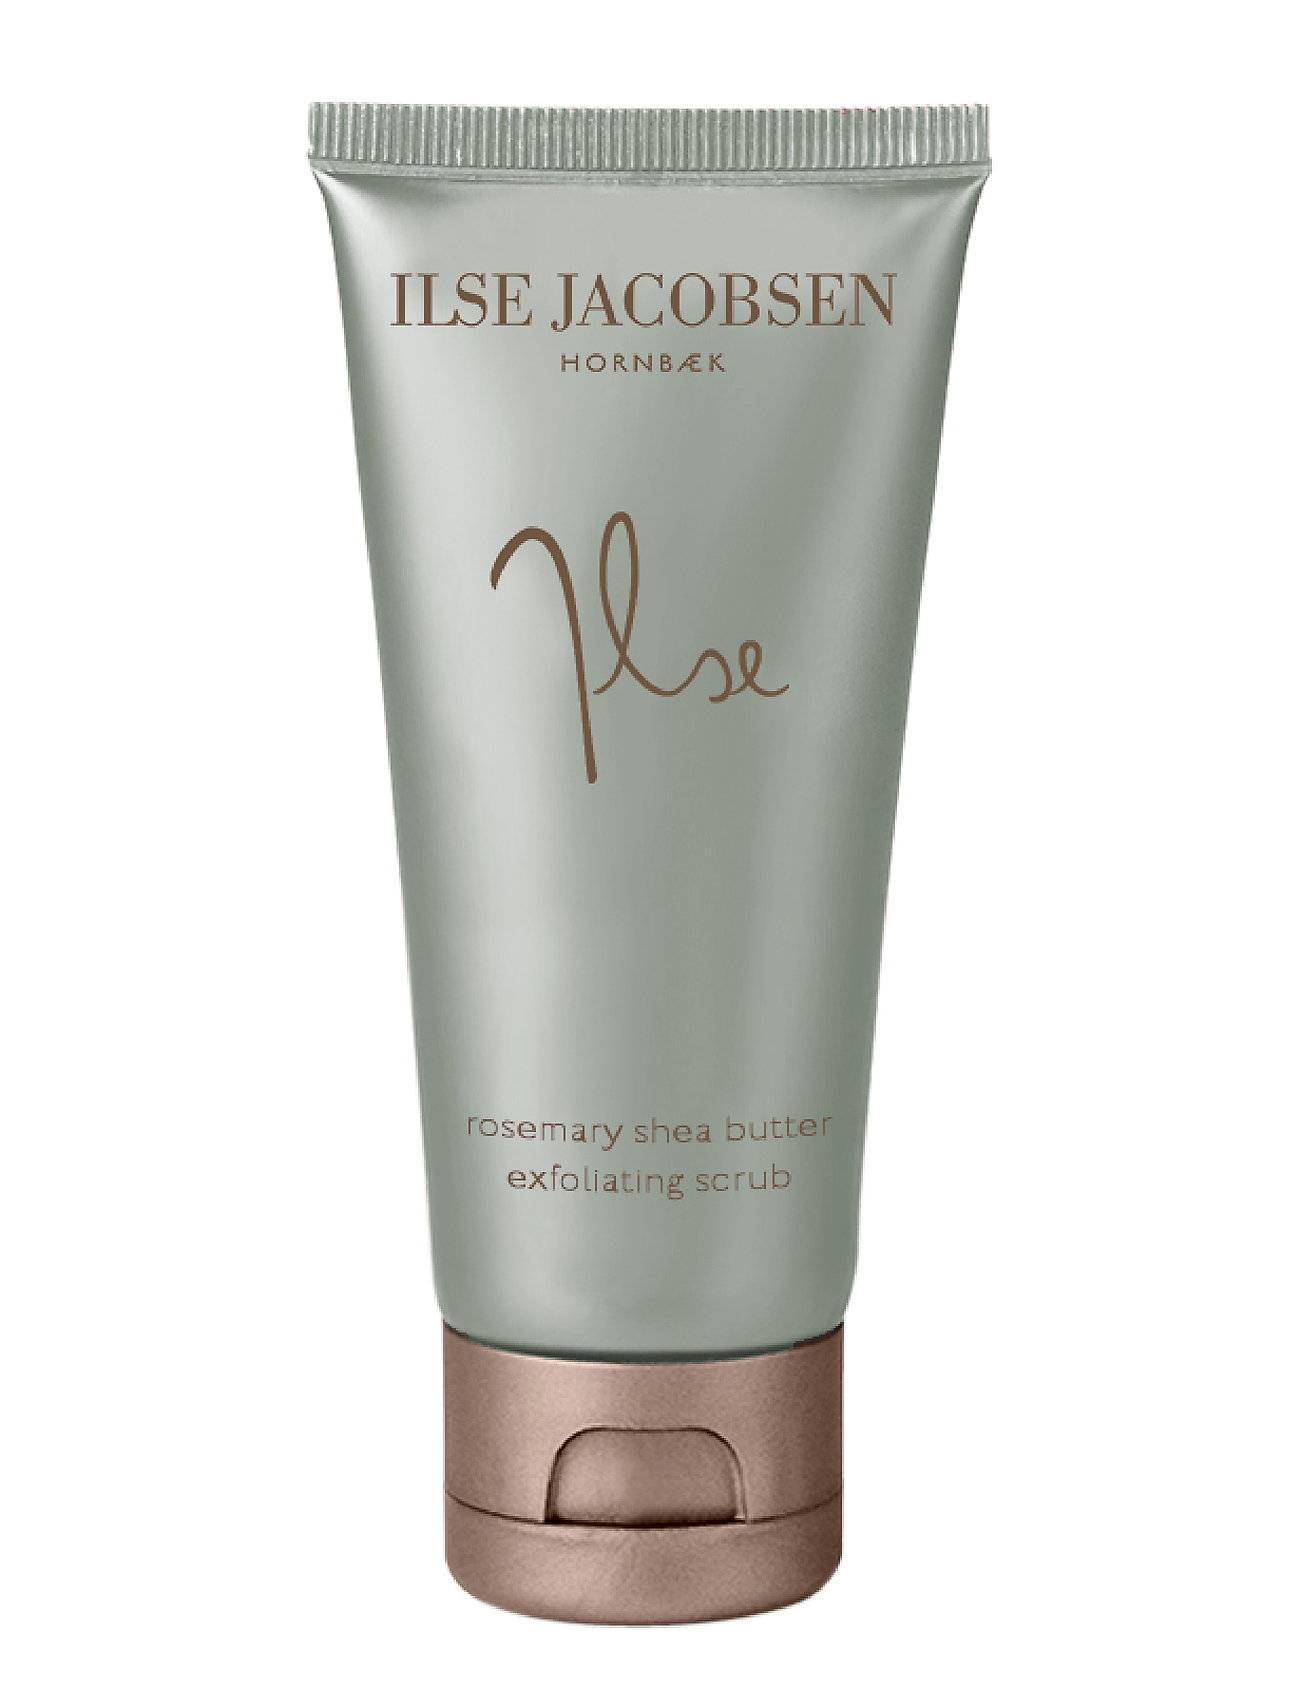 Ilse Jacobsen SPA & Beauty Face Exfoliating Rosemary Shea Butter Exf Scrub